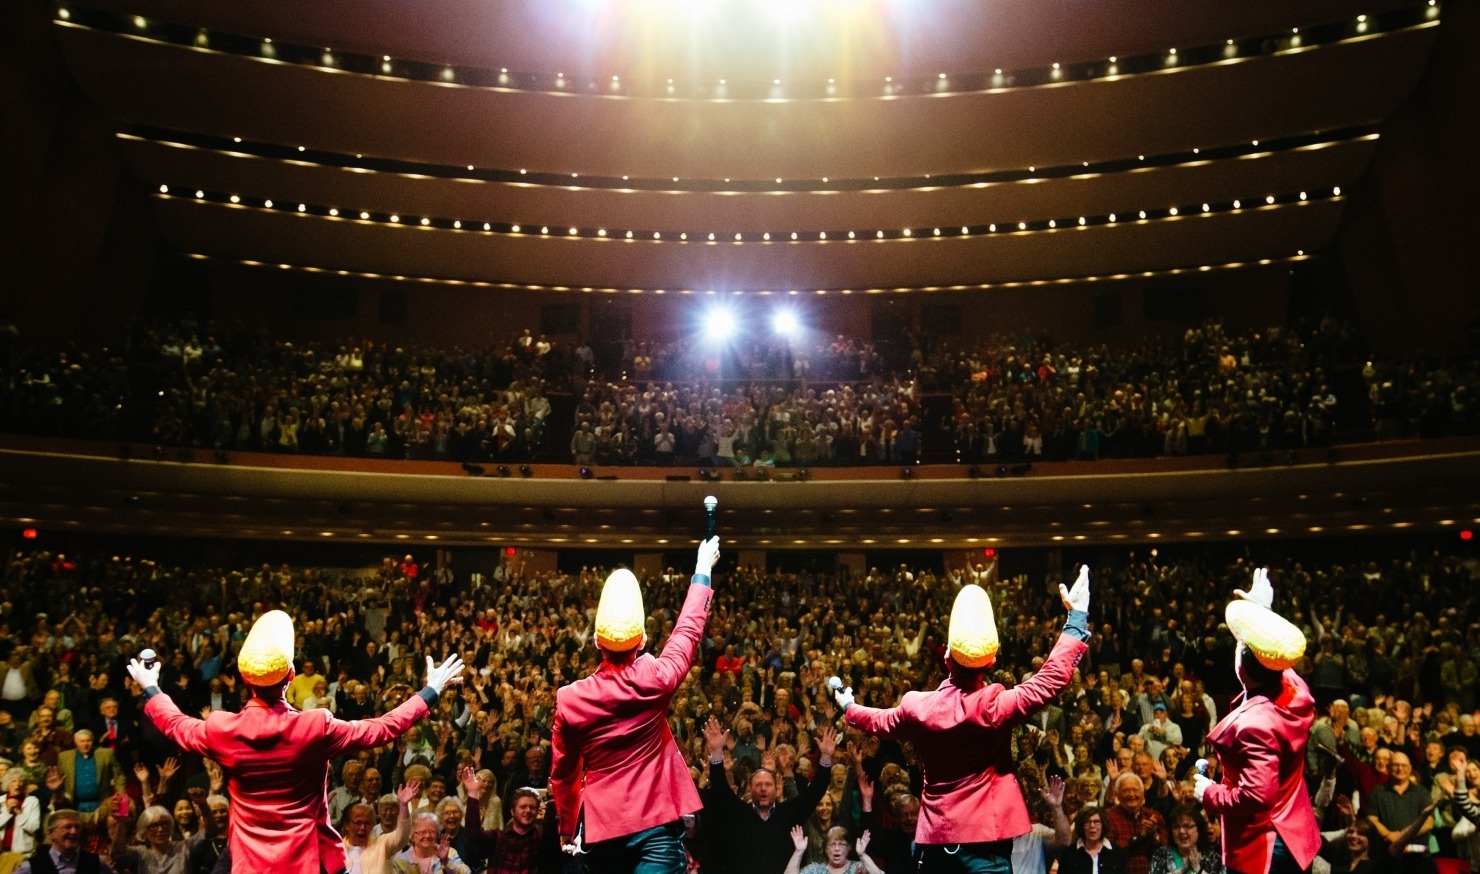 Midtown Men performing in red suit jackets with cornhead hats at the Lied Center for a packed crowd.